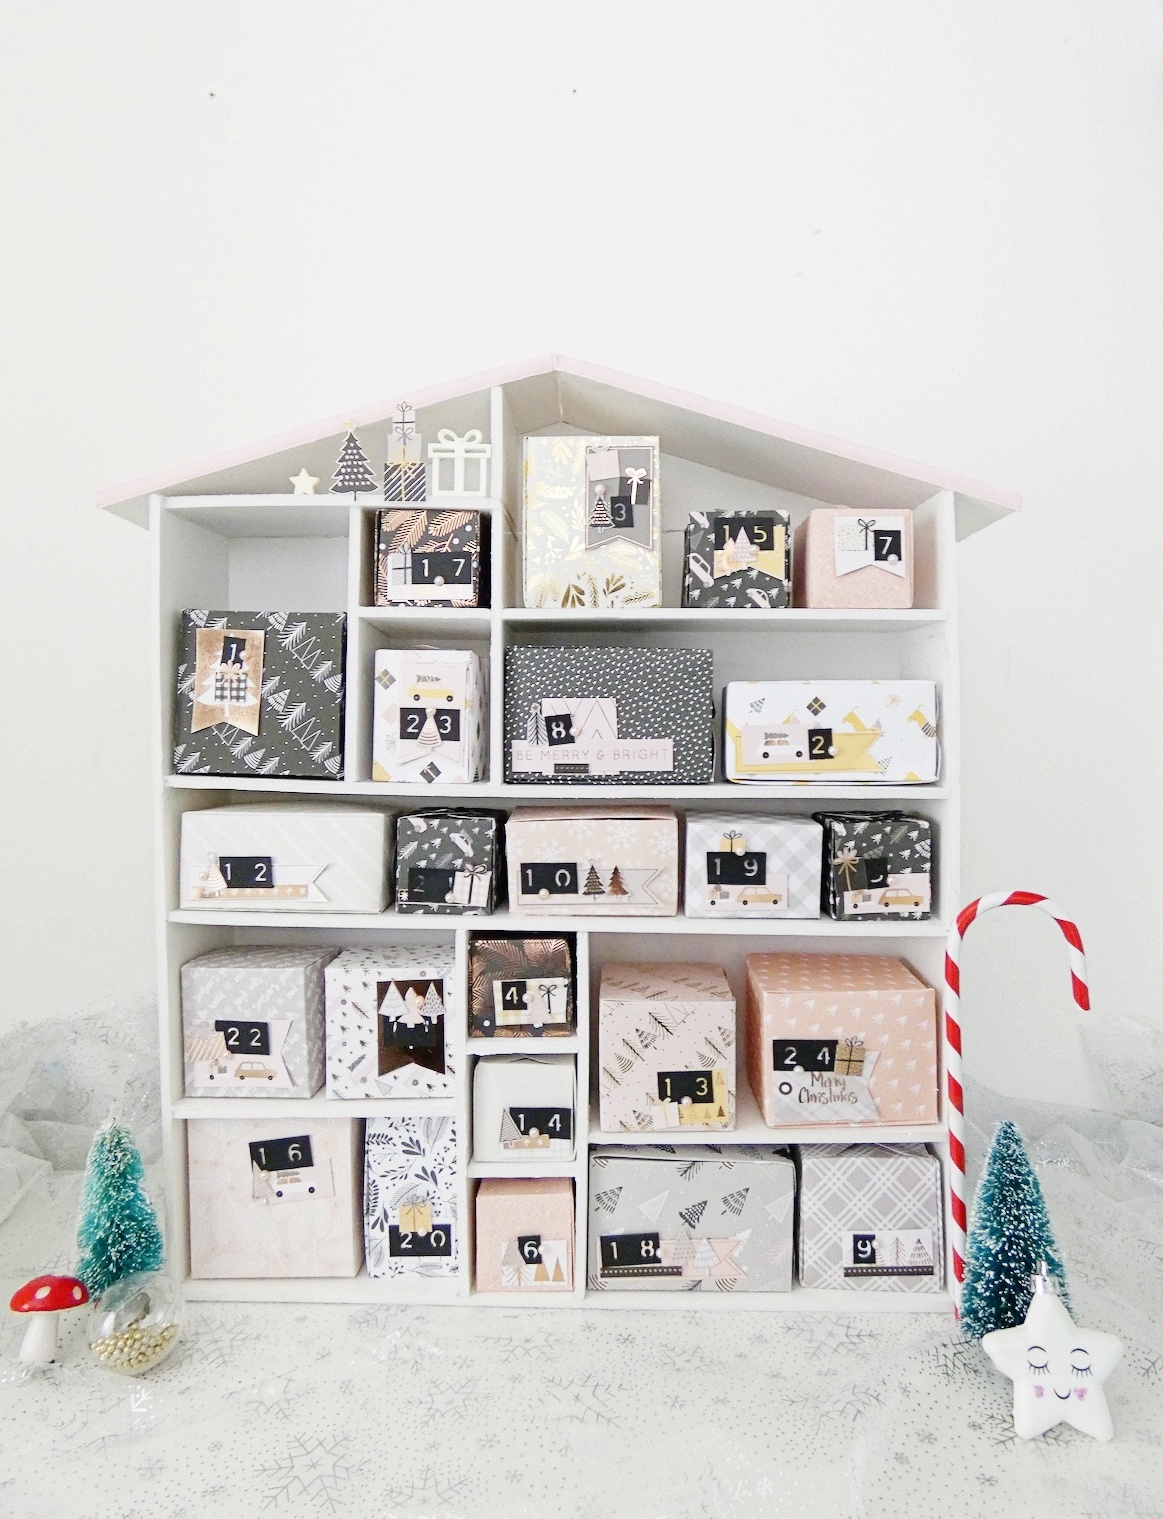 https://www.wermemorykeepers.com/wp-content/uploads/2019/11/advent-house-by-soraya-maes-28.jpg